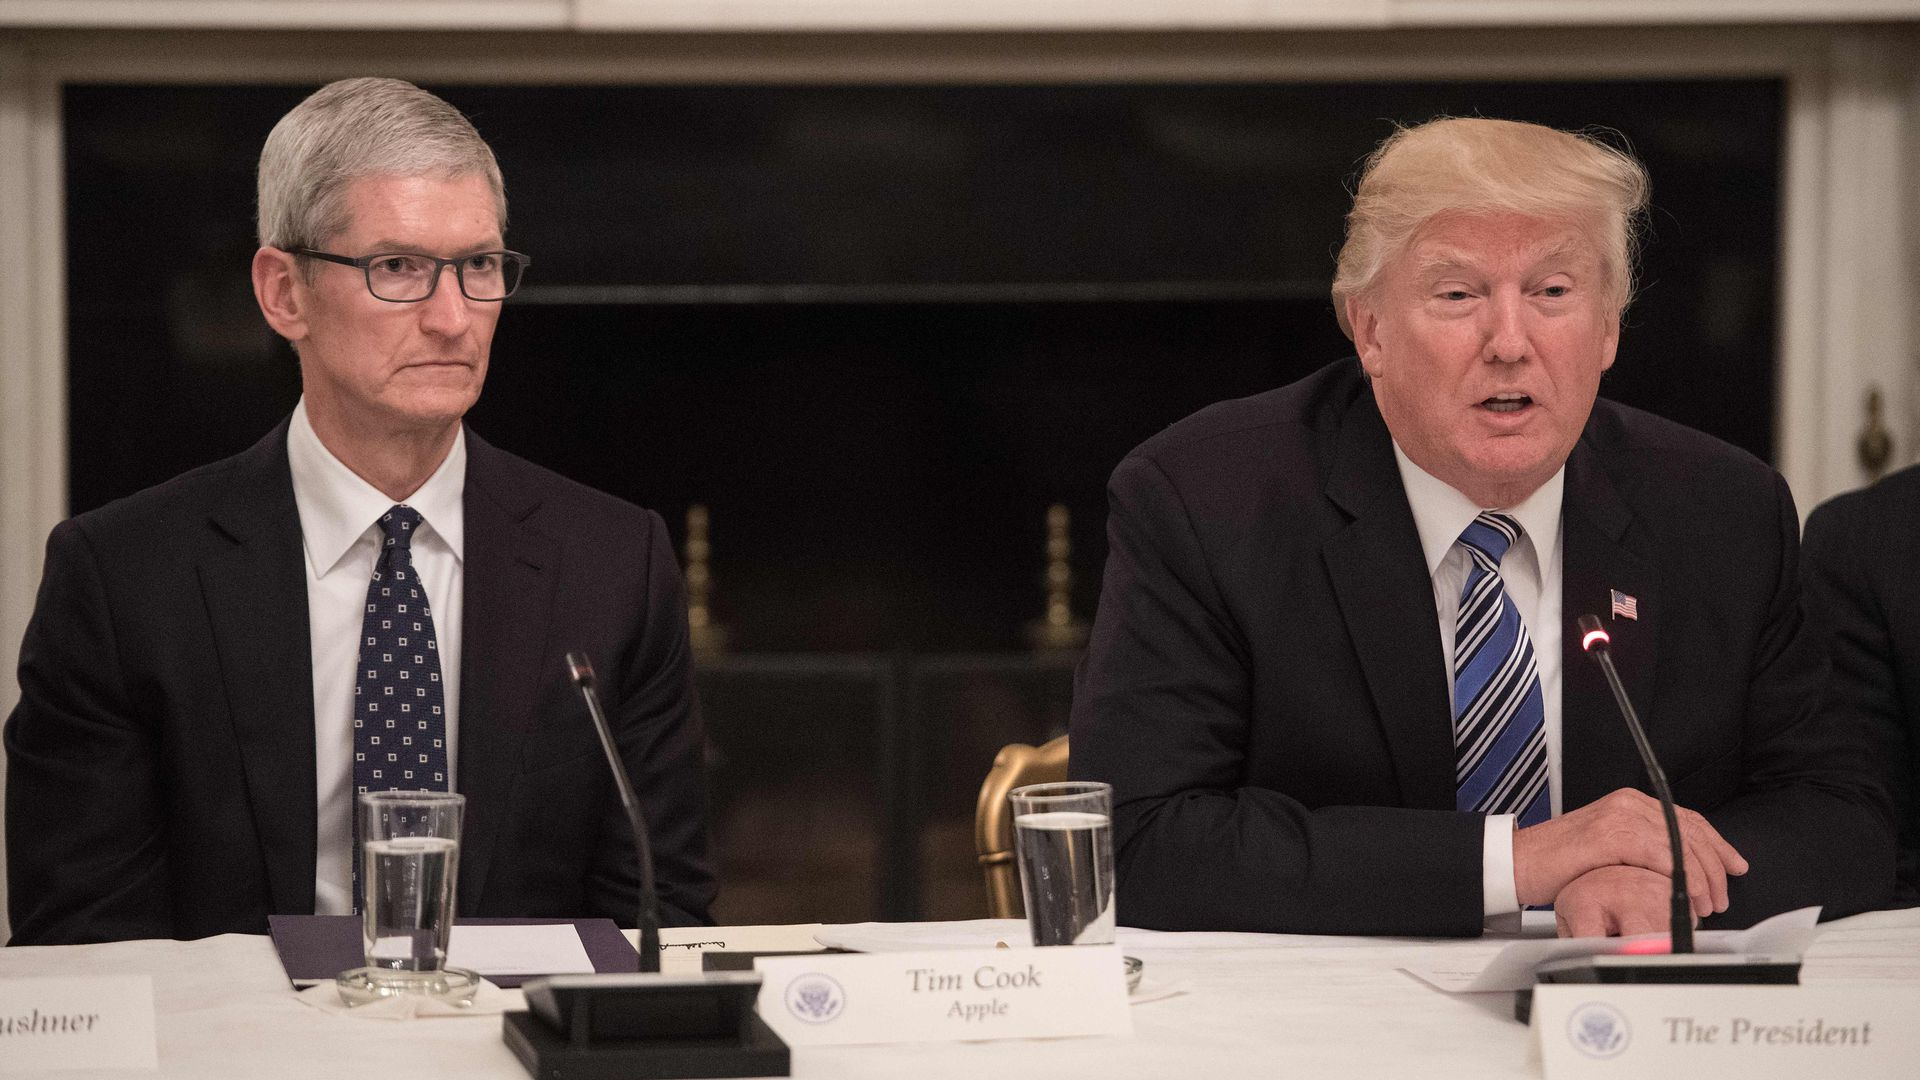 President Trump meeting with Apple CEO Tim Cook